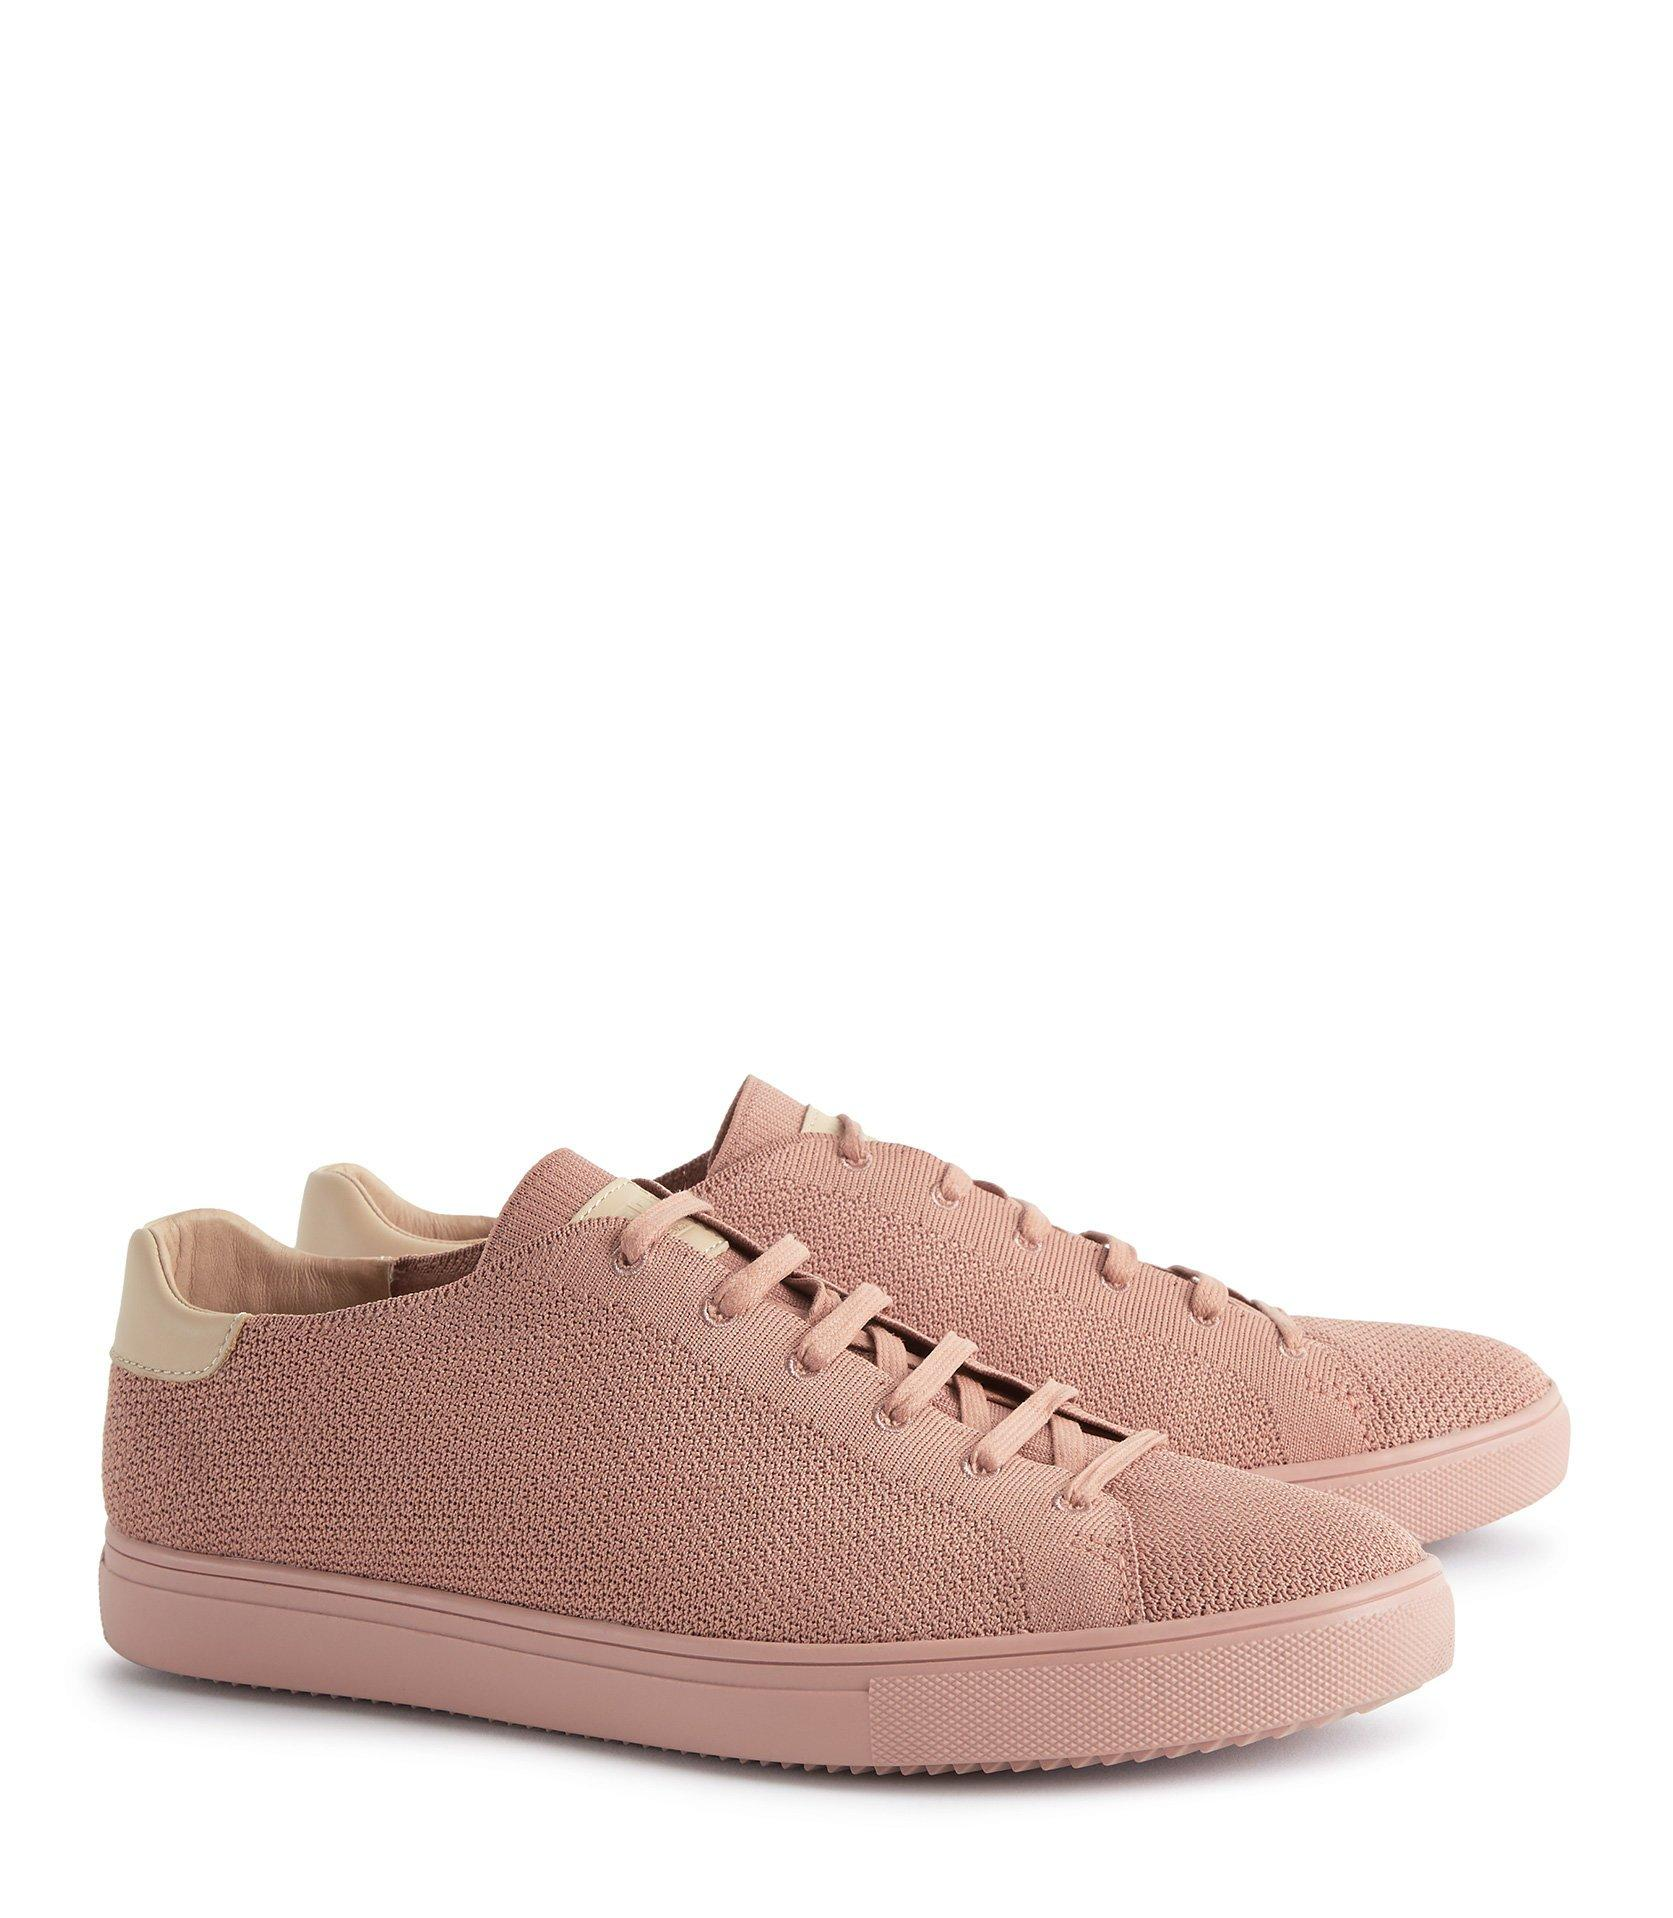 Reiss Leather Bradley Knit - Clae Knitted Sneakers for Men